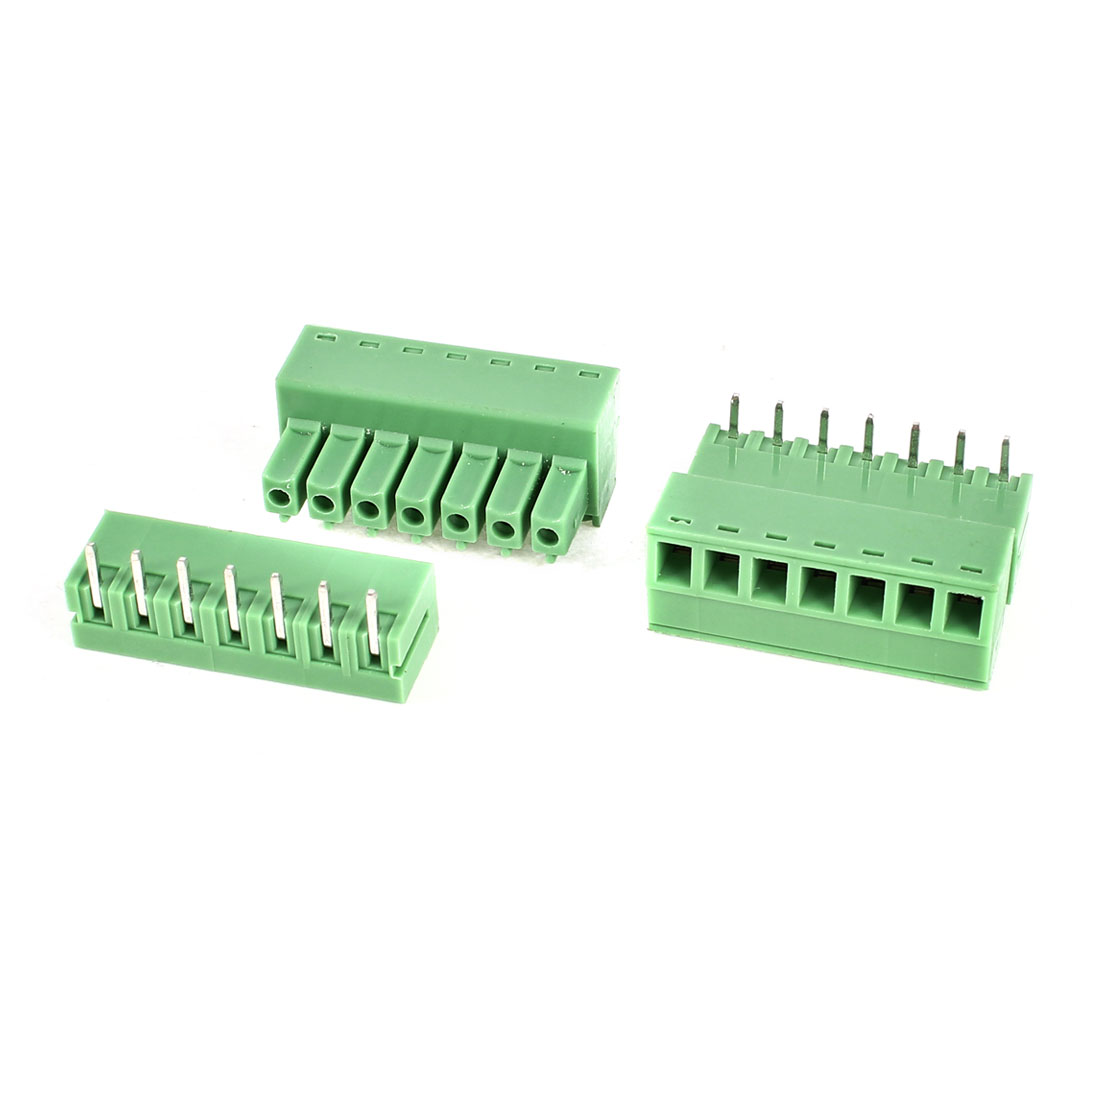 2Pcs 2EDG3.81-7P 3.81mm Pitch 7 Bending Pins Female and Male Wire Pluggable Terminal Barrier Strip Block Connector 300V 8A